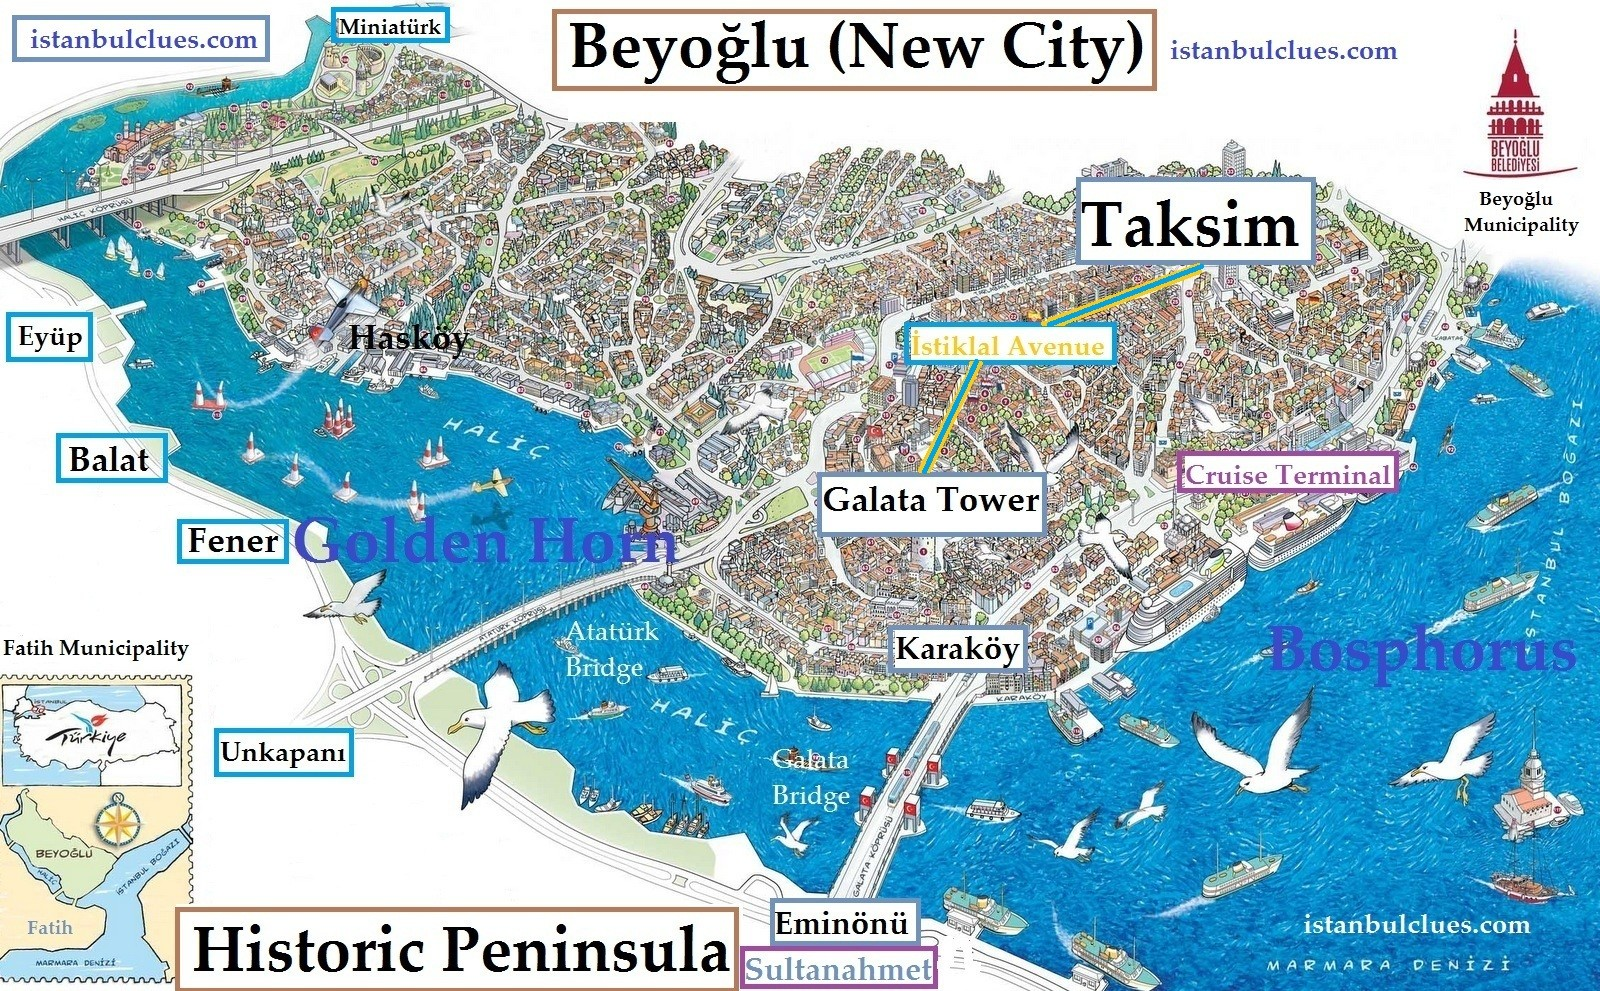 Istanbul Tourist Map, Attraction-Sightseeing PDF 2019 - Istanbul Clues